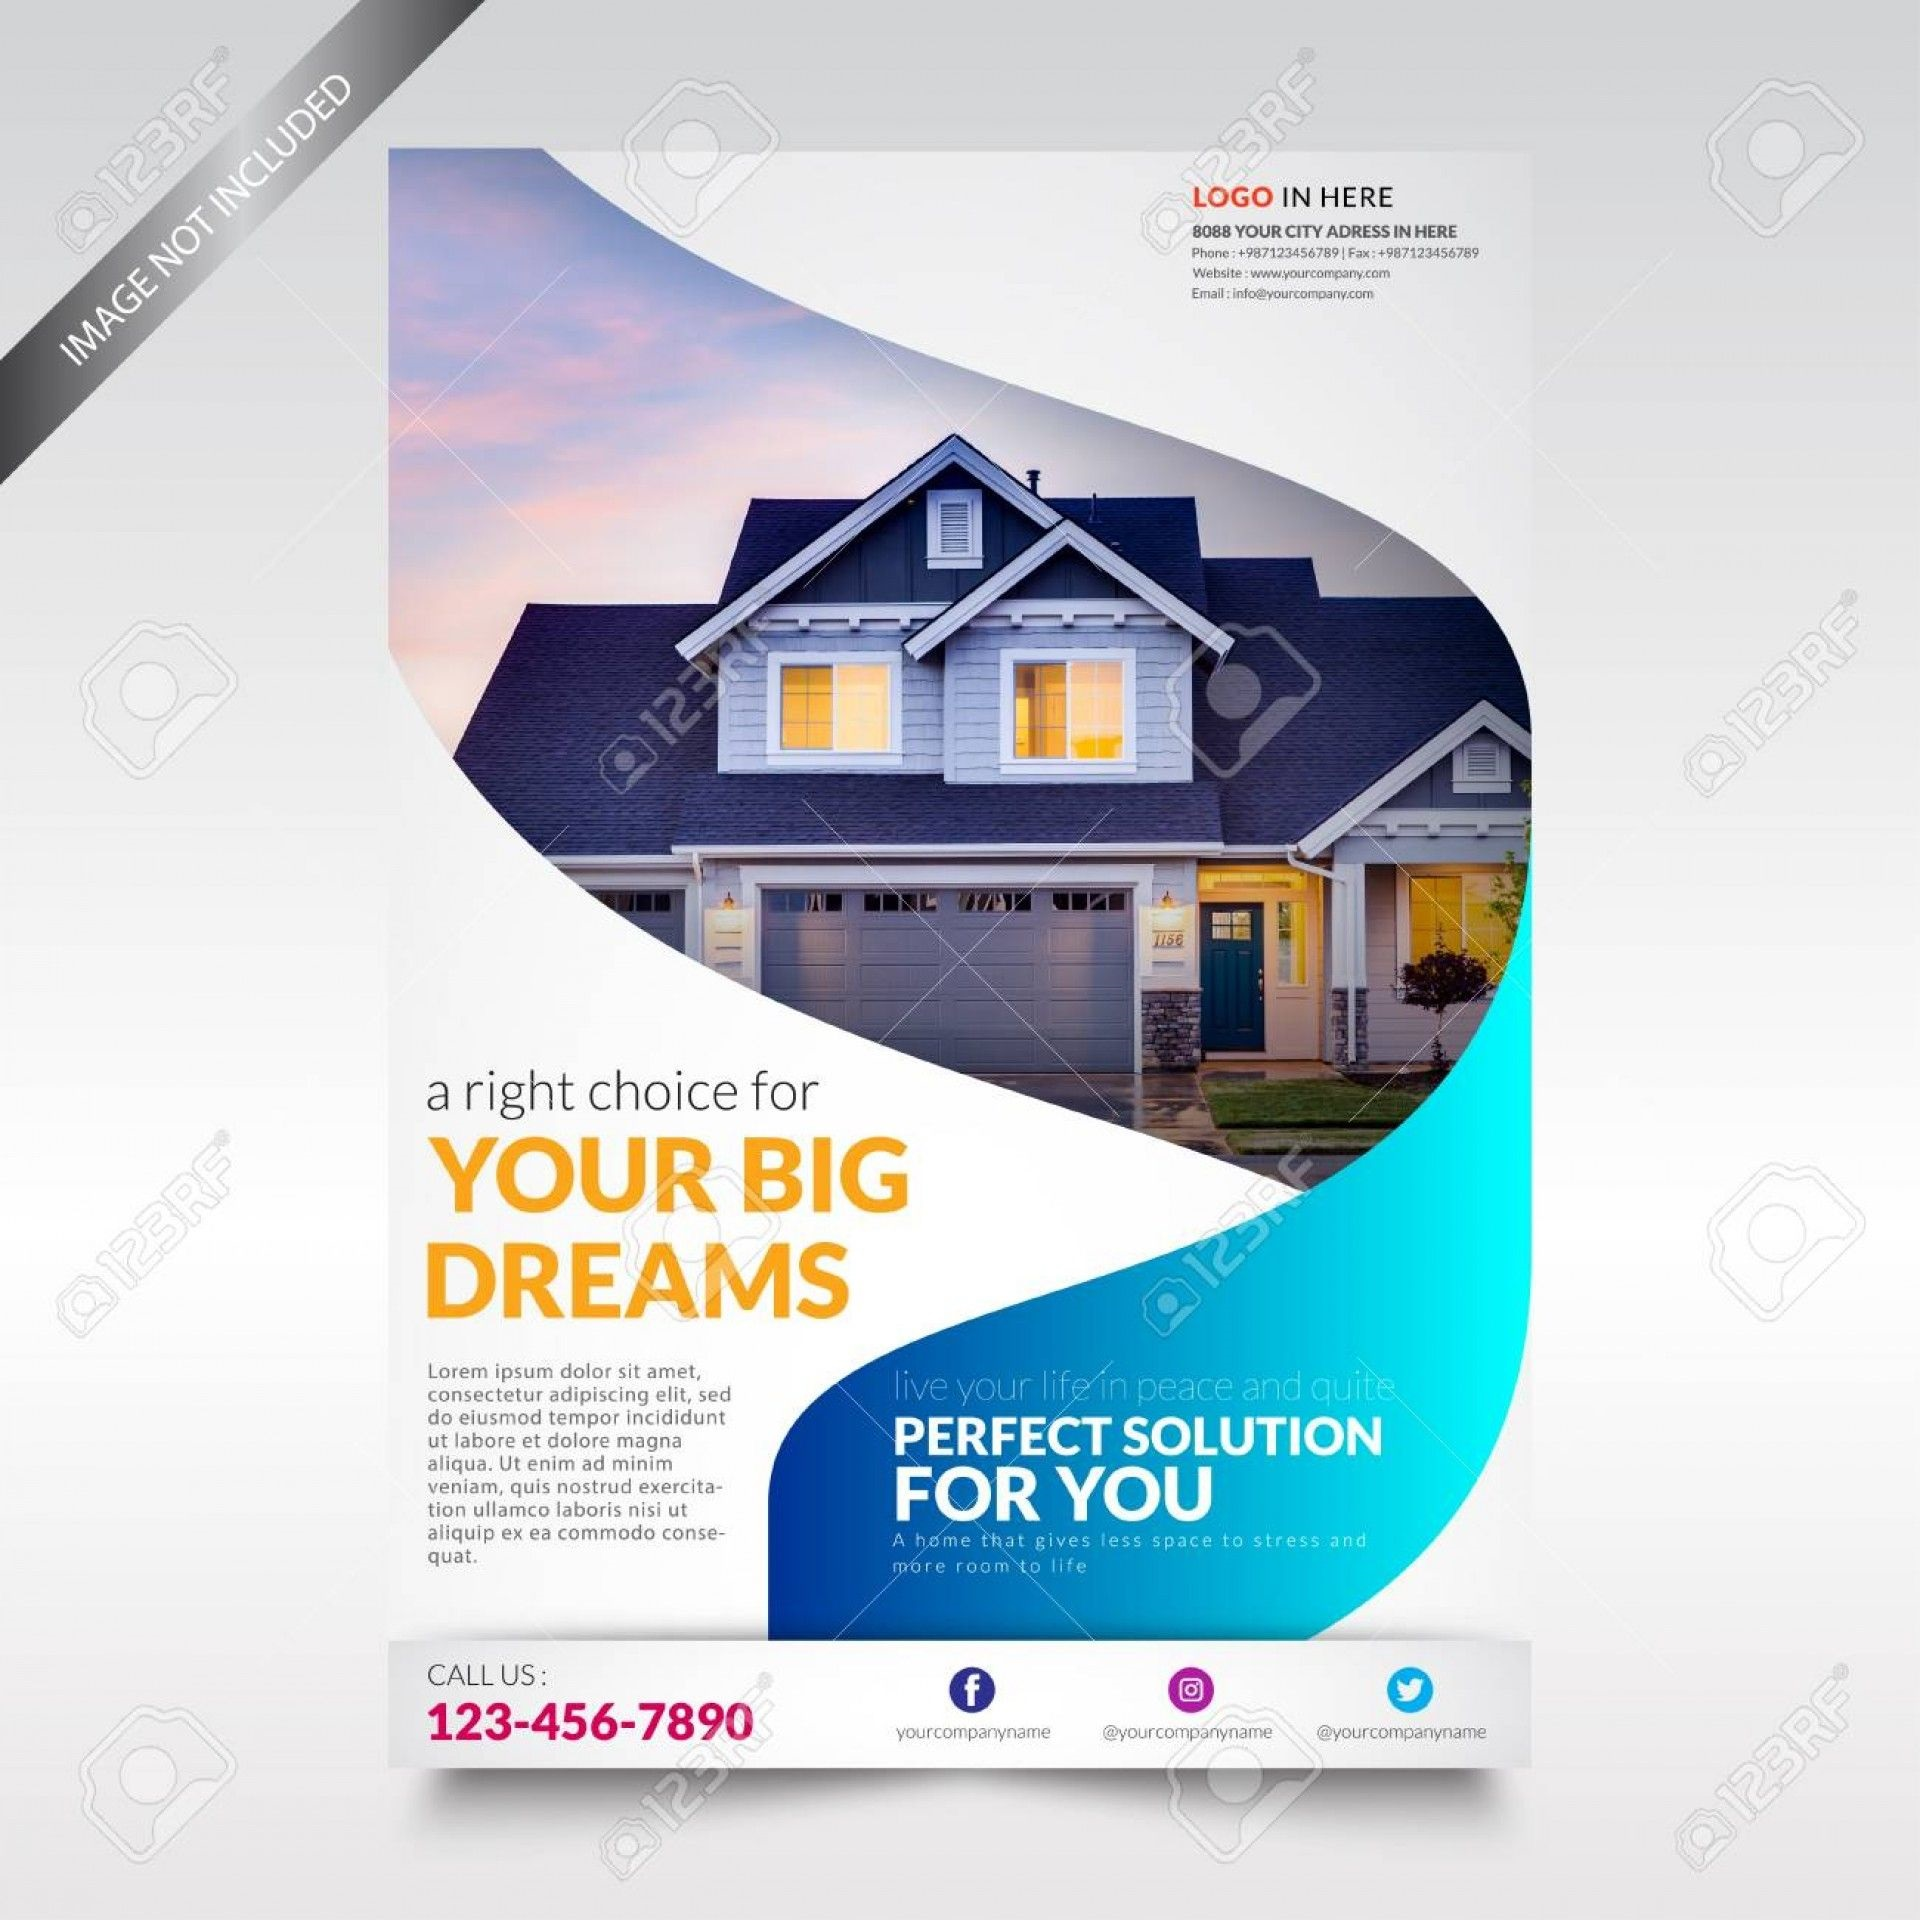 001 Unusual Real Estate Advertising Template Image  Newspaper Ad Instagram CraigslistFull